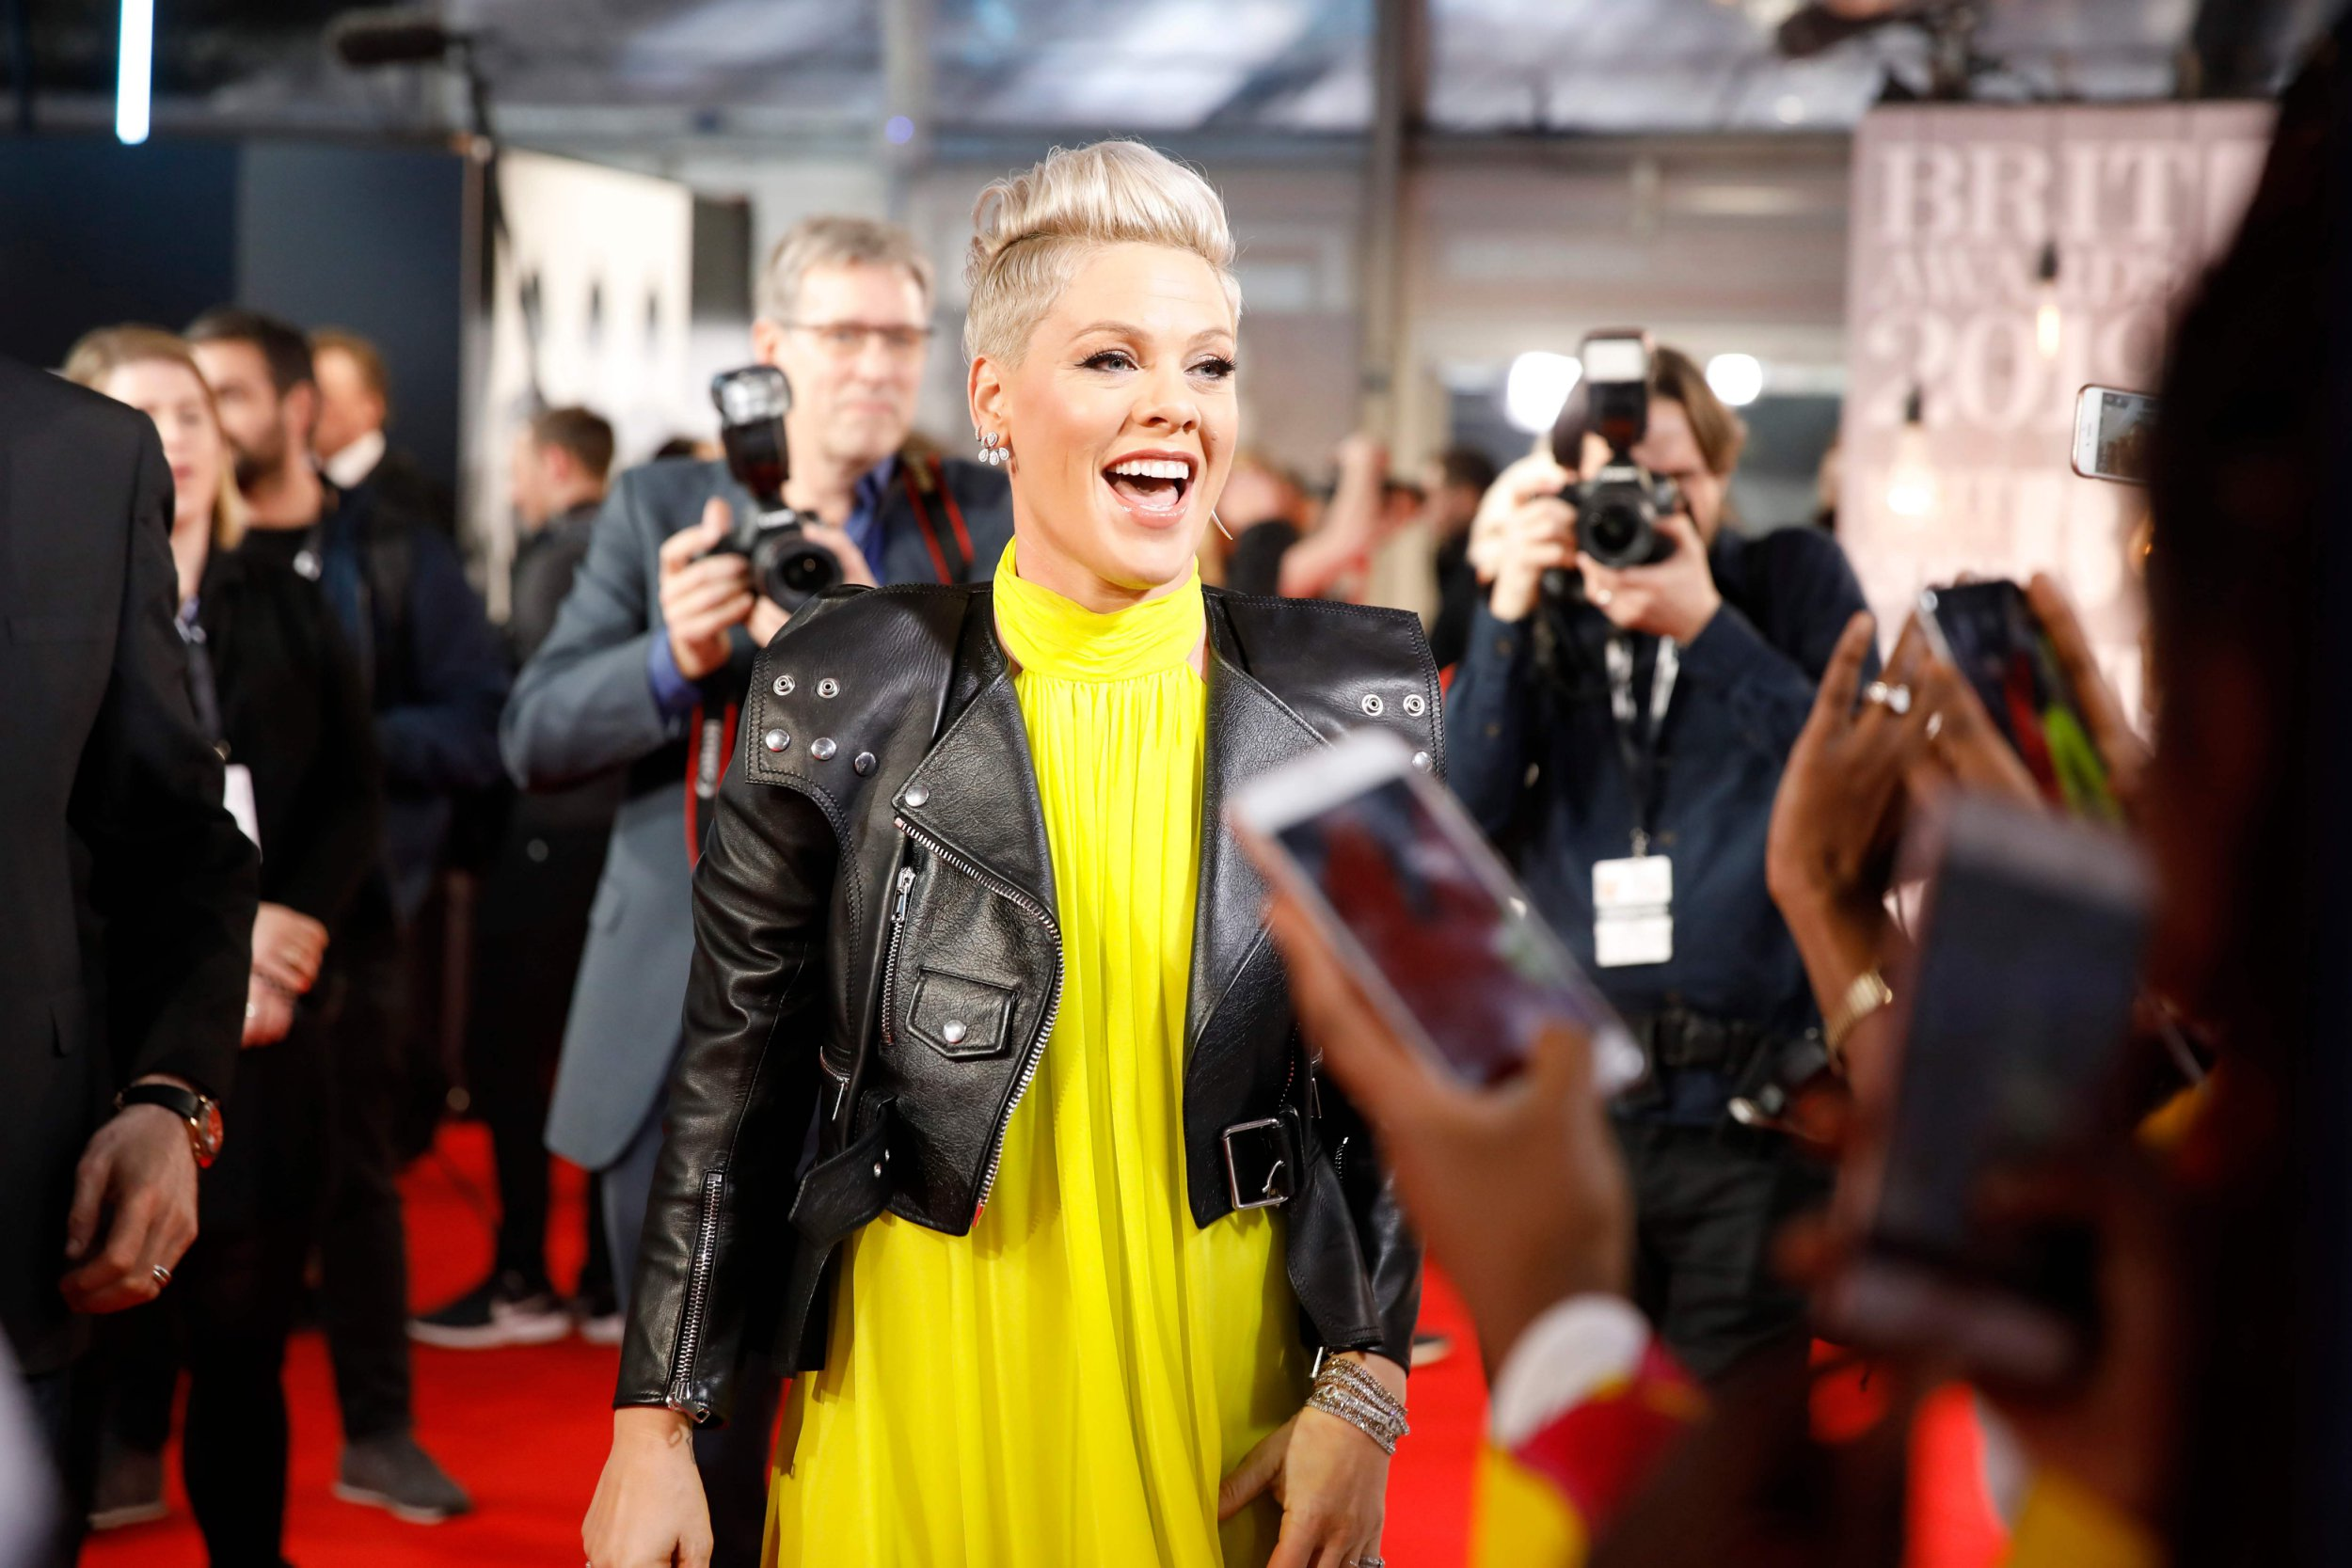 US singer-songwriter Pink reacts on the red carpet on arrival for the BRIT Awards 2019 in London on February 20, 2019. (Photo by Tolga AKMEN / AFP) / RESTRICTED TO EDITORIAL USE NO POSTERS NO MERCHANDISE NO USE IN PUBLICATIONS DEVOTED TO ARTISTSTOLGA AKMEN/AFP/Getty Images